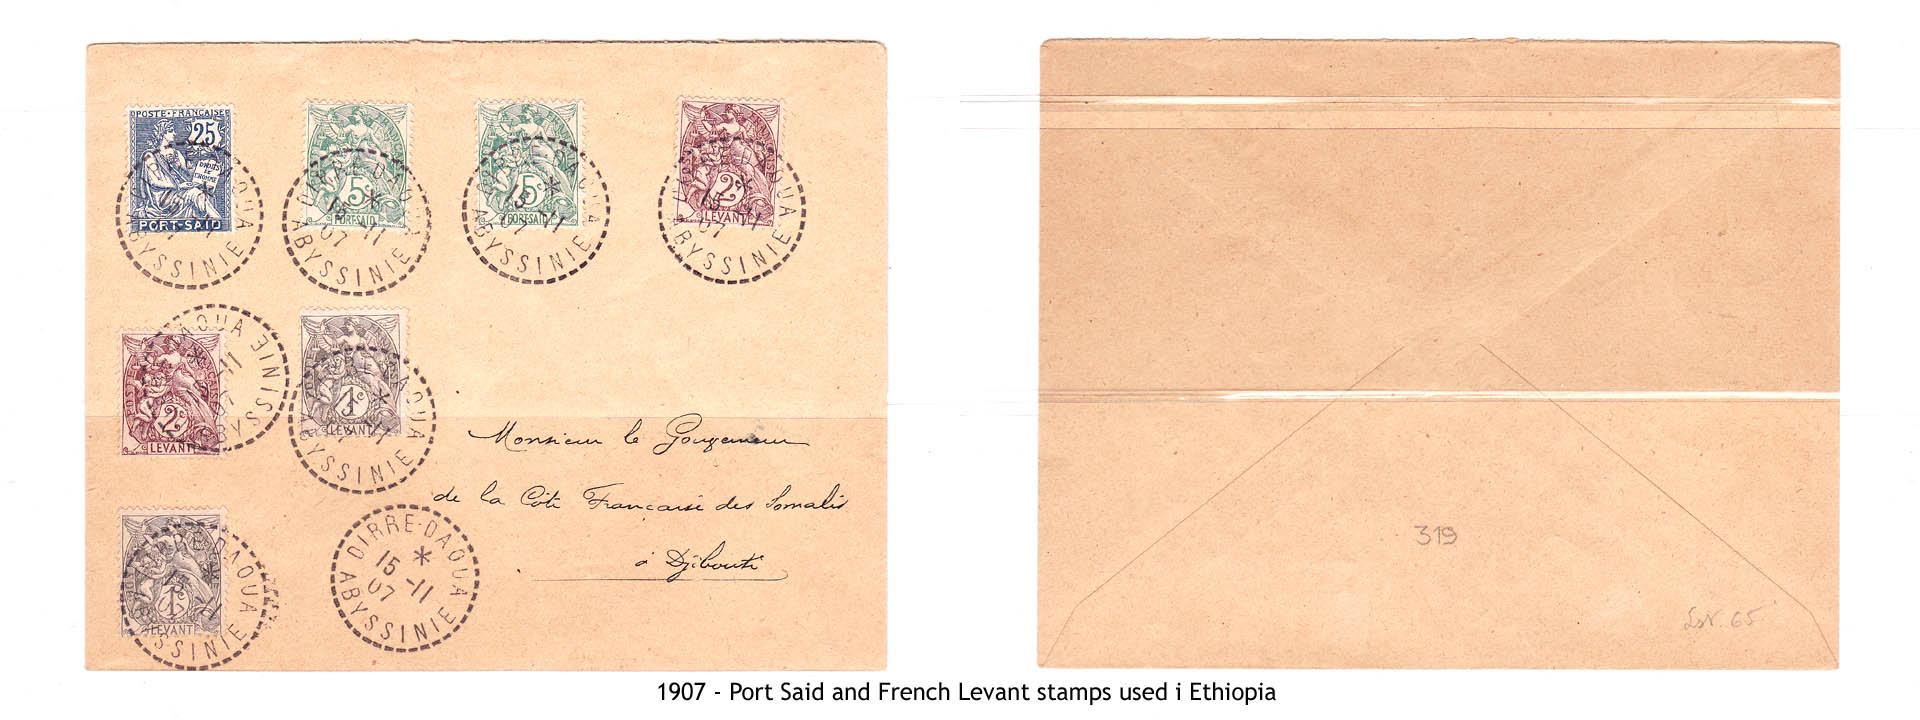 1907 - Port Said and French Levant stamps used i Ethiopia